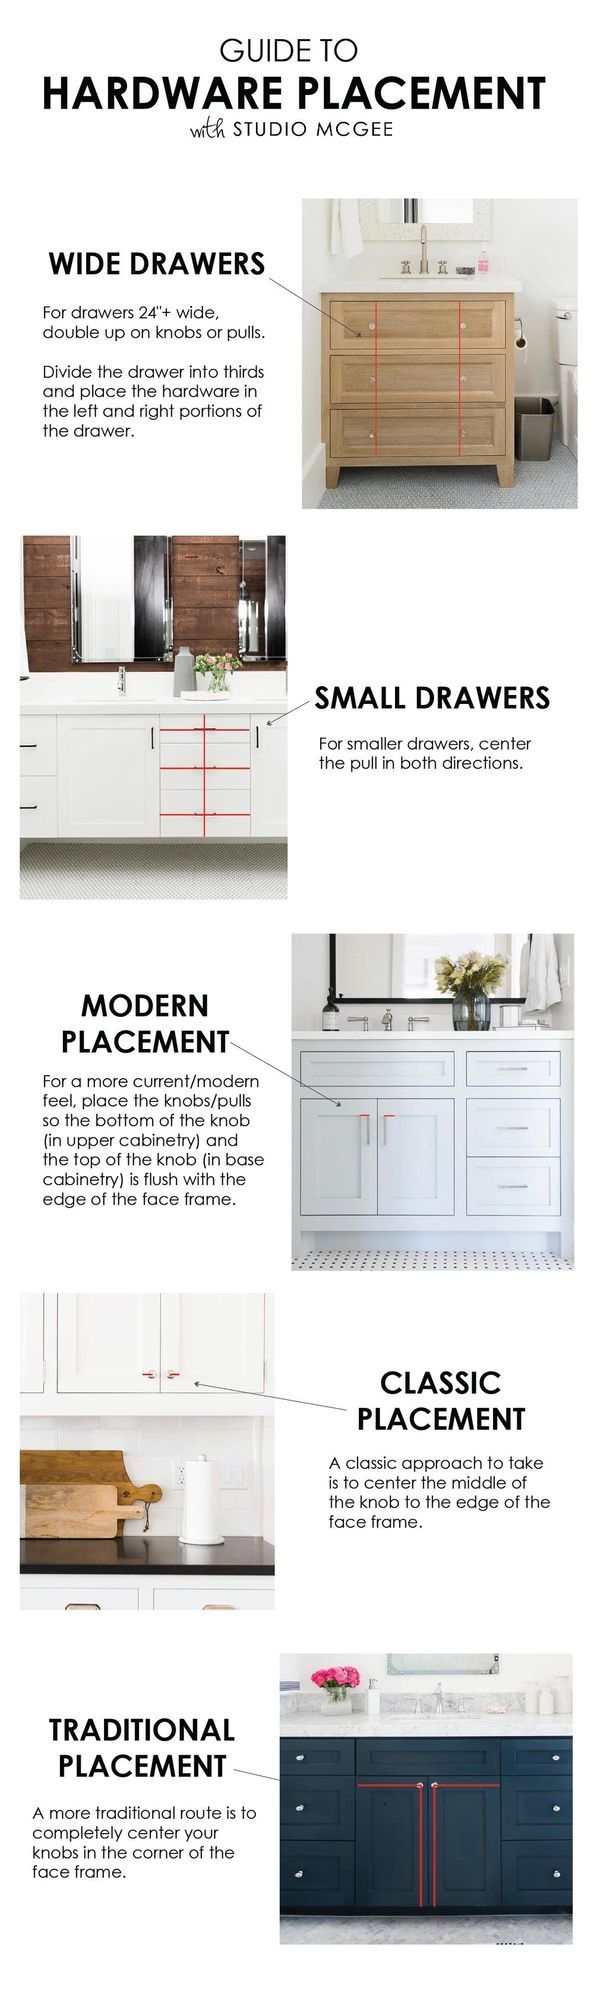 Hardware Placement Guide (STUDIO MCGEE)